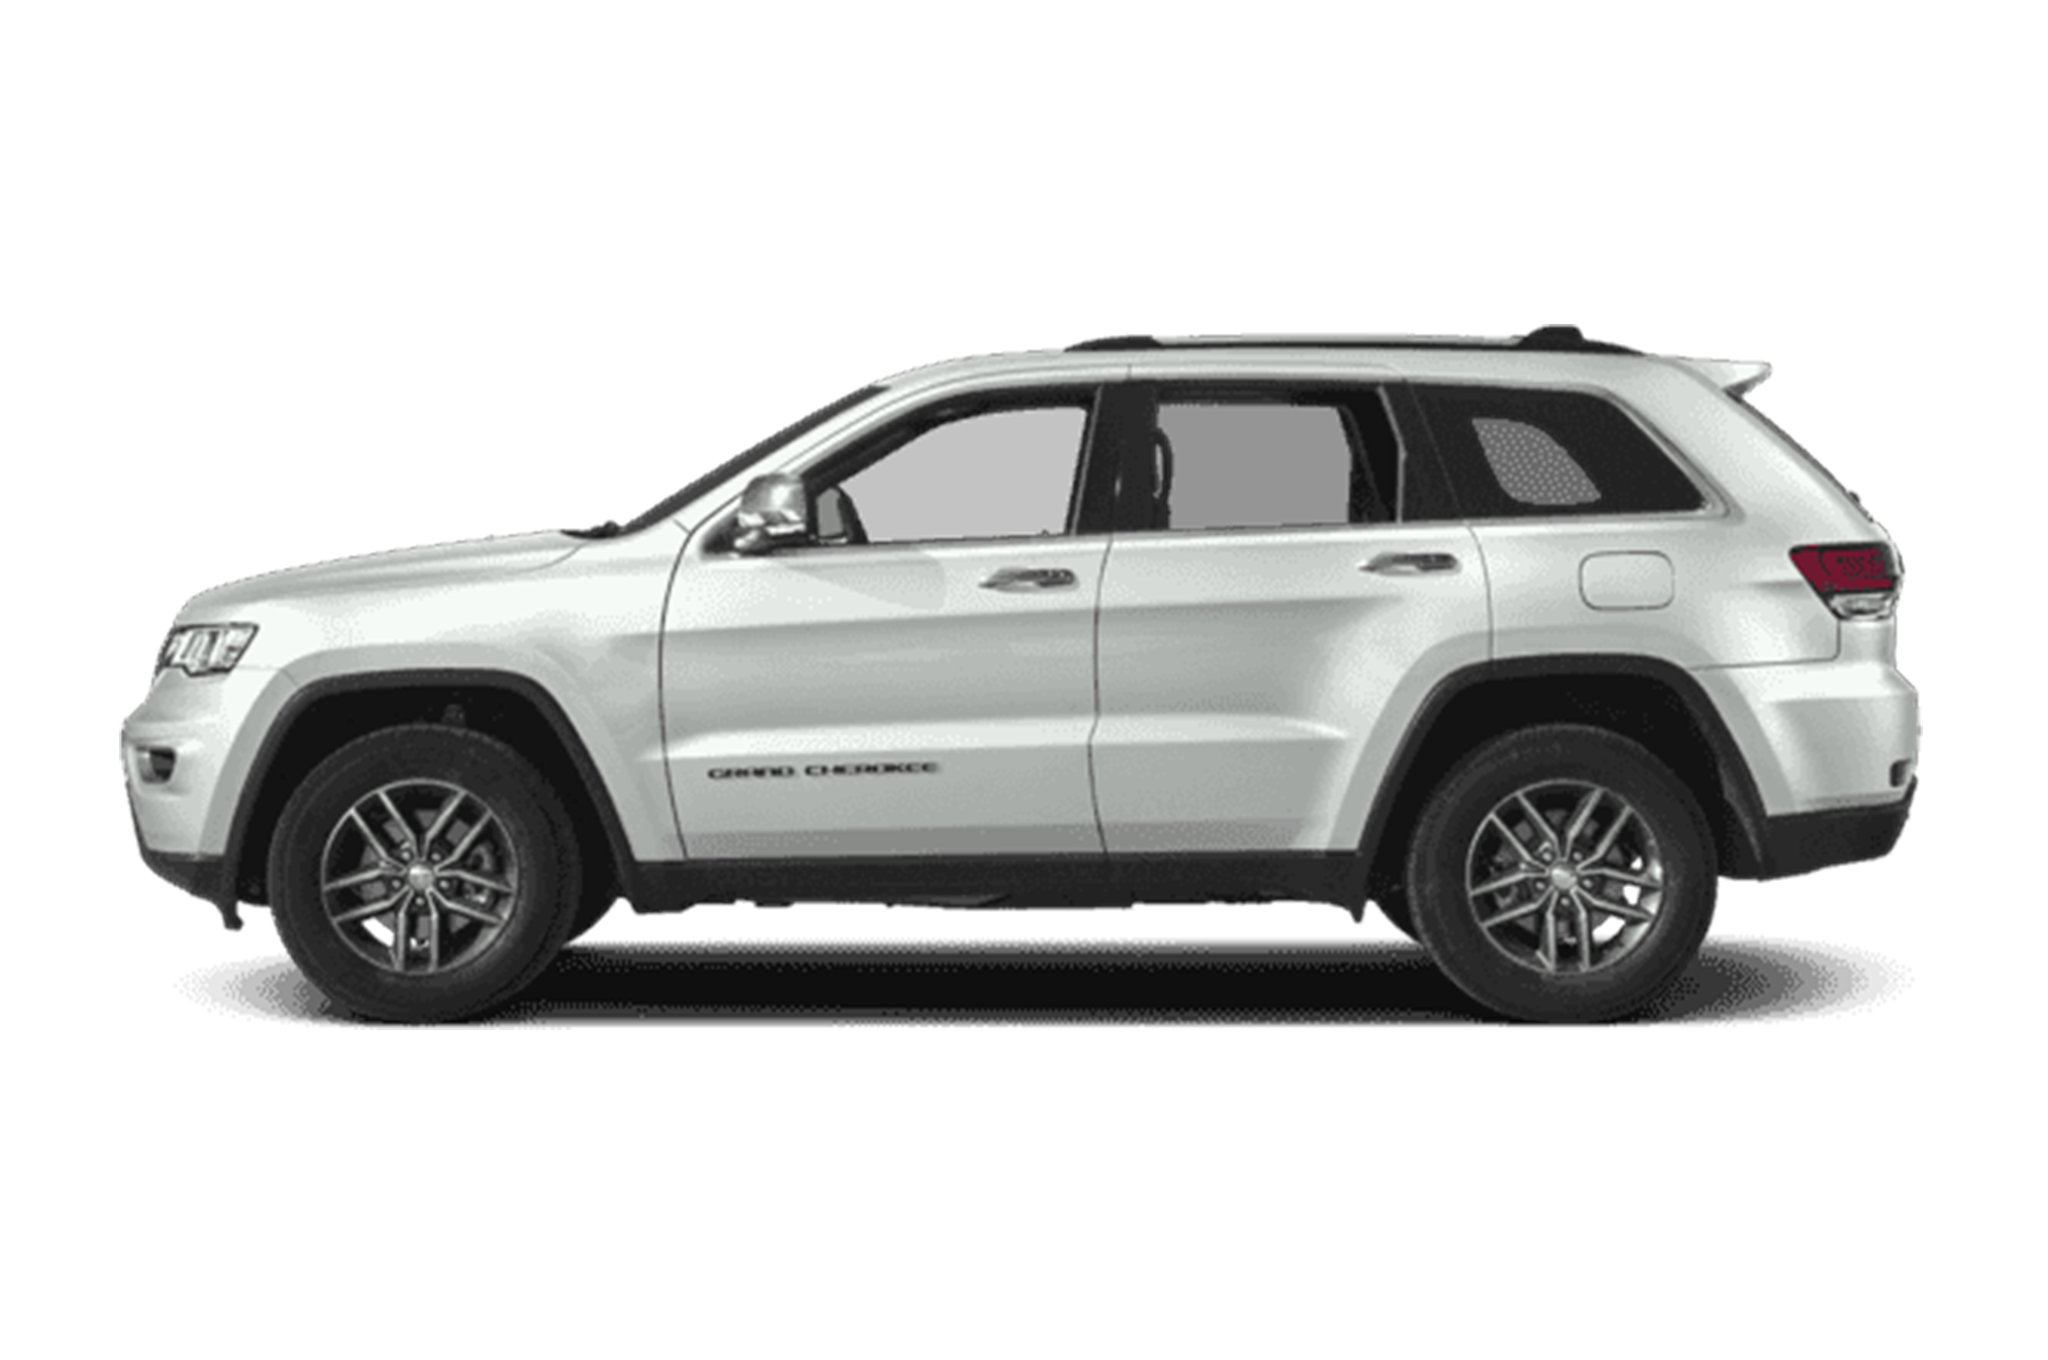 New Jeep Grand Cherokee Delray Beach FL